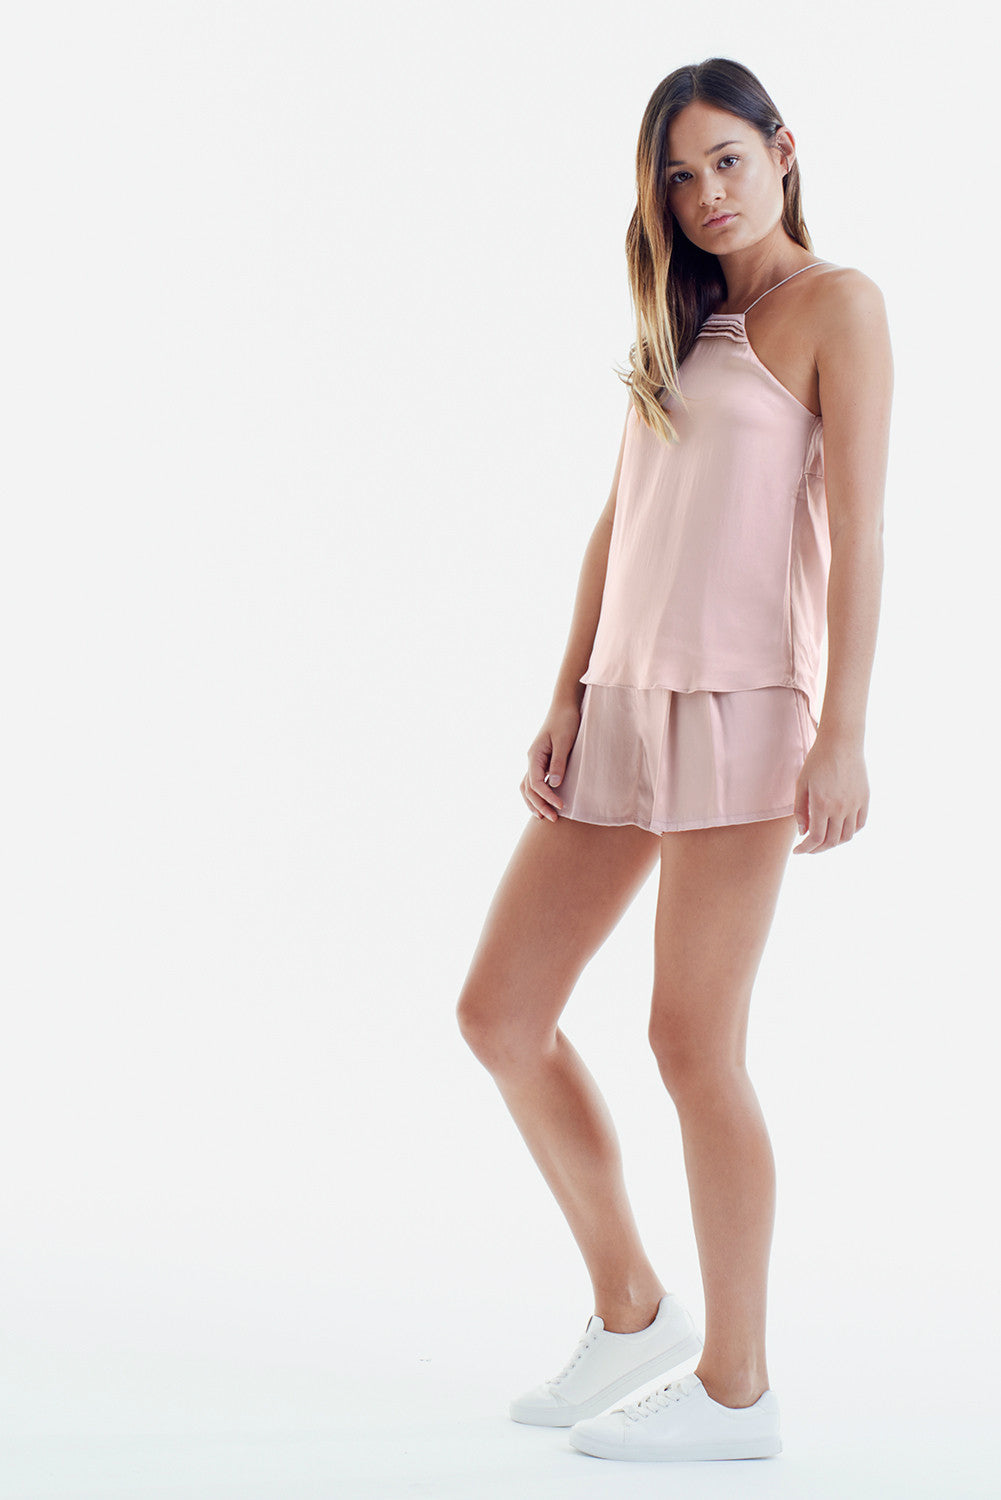 TWO PIECE SET: BLUSH PINK 2 in 1 CAMISOLE